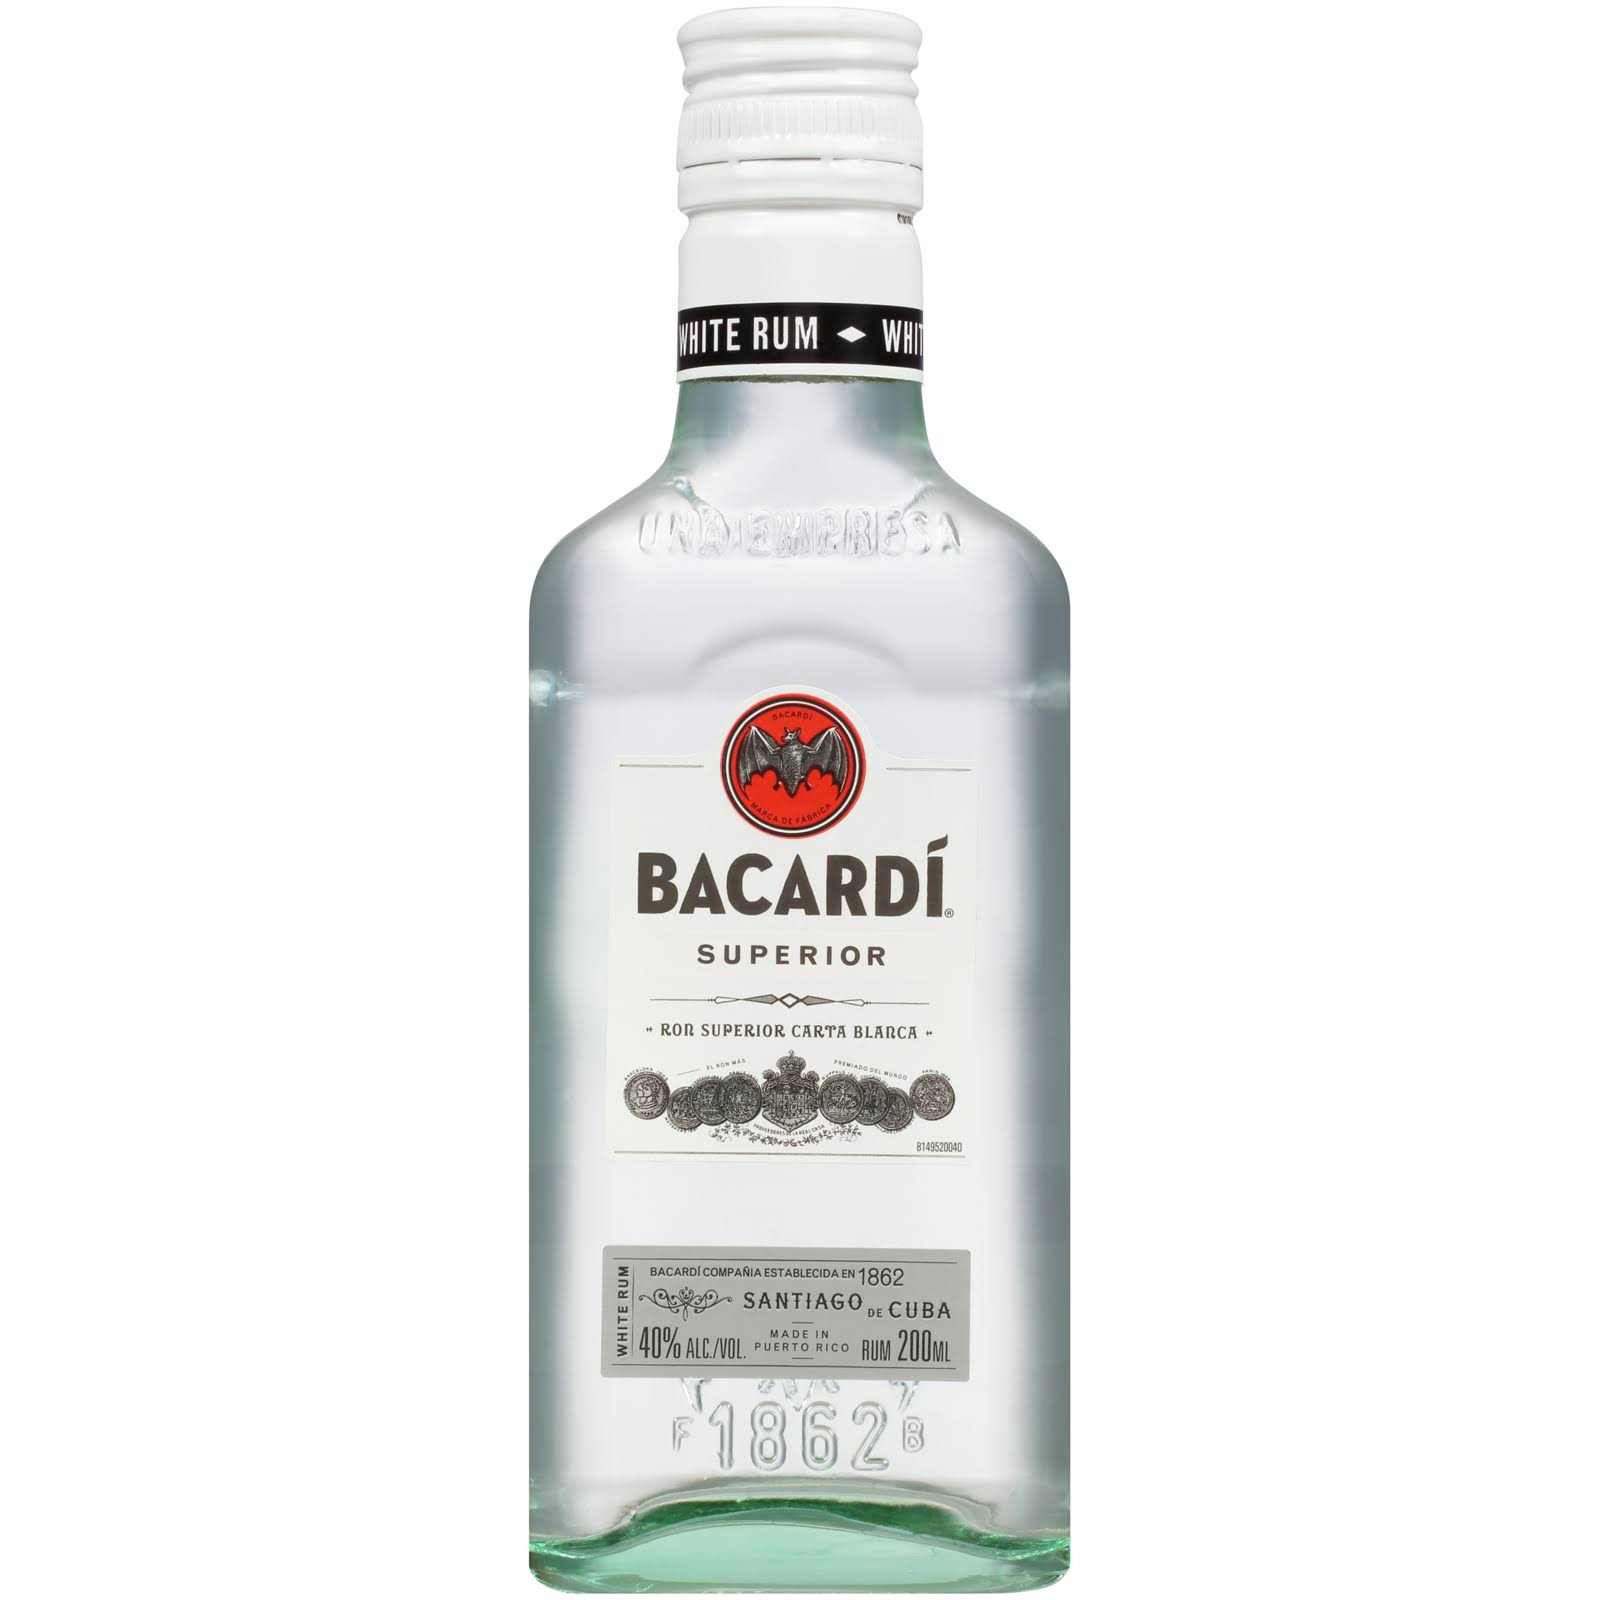 Bacardi Rum, White - 200 ml